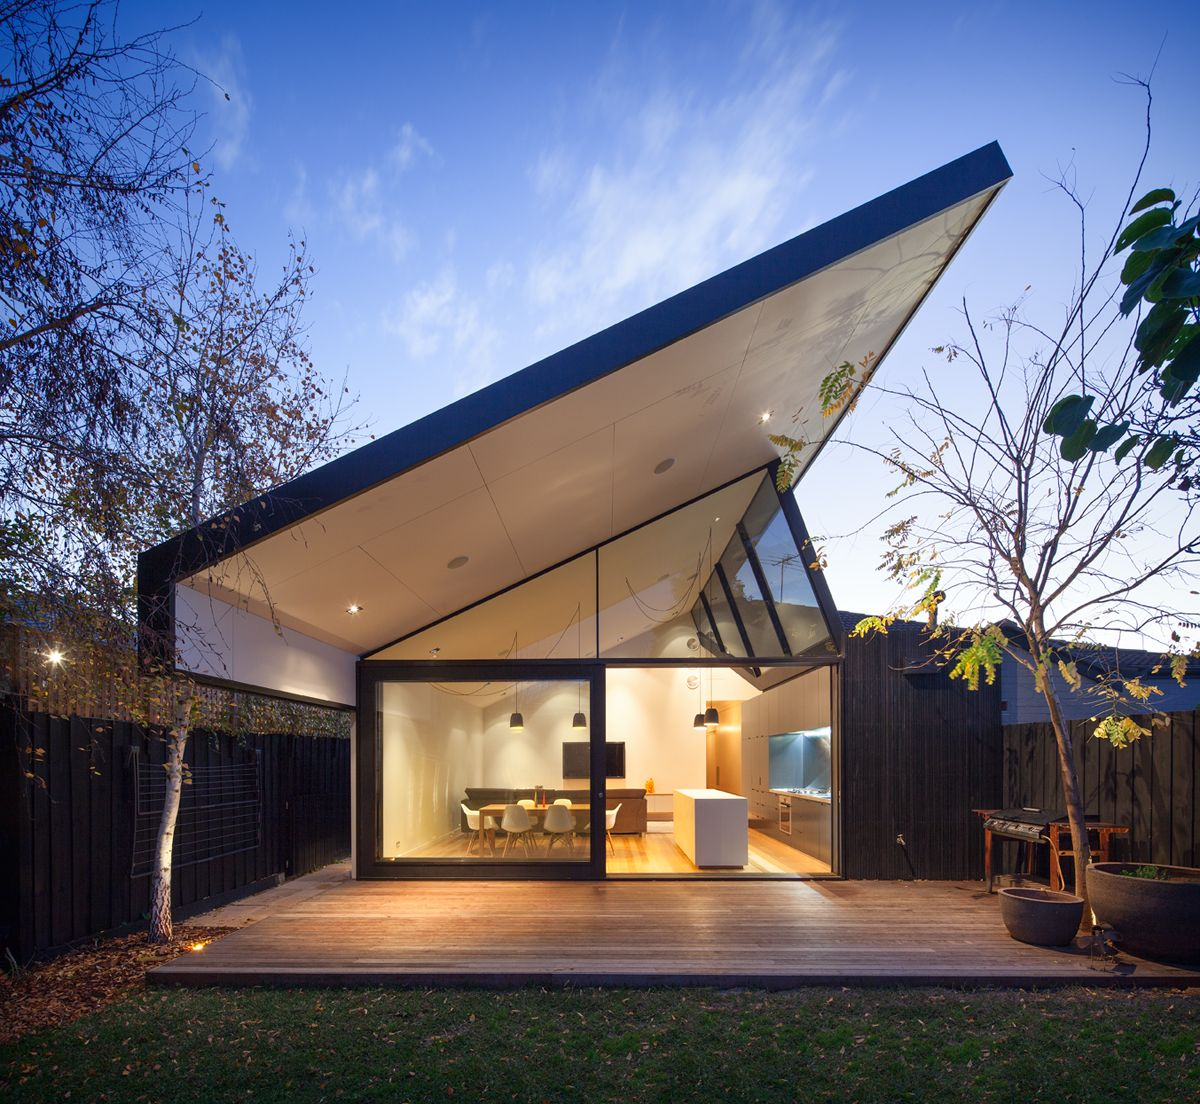 Home Design Ideas Construction: Residential Urban Glass Floating Roof